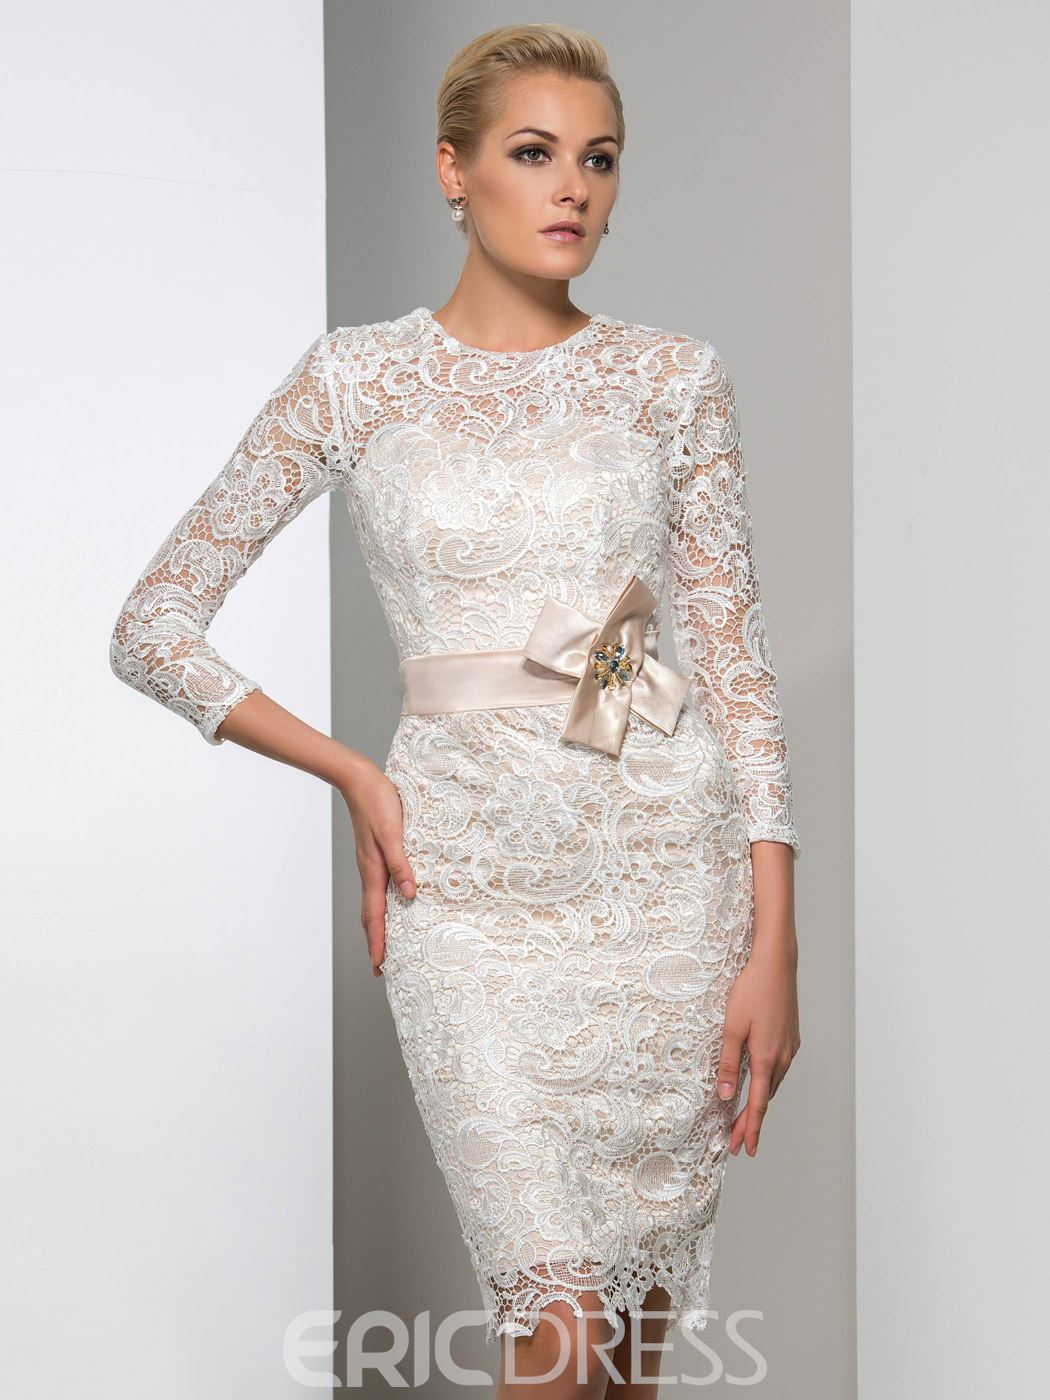 Ericdress Long Sleeve Bowknot Lace Cocktail Dress 11436281 ...